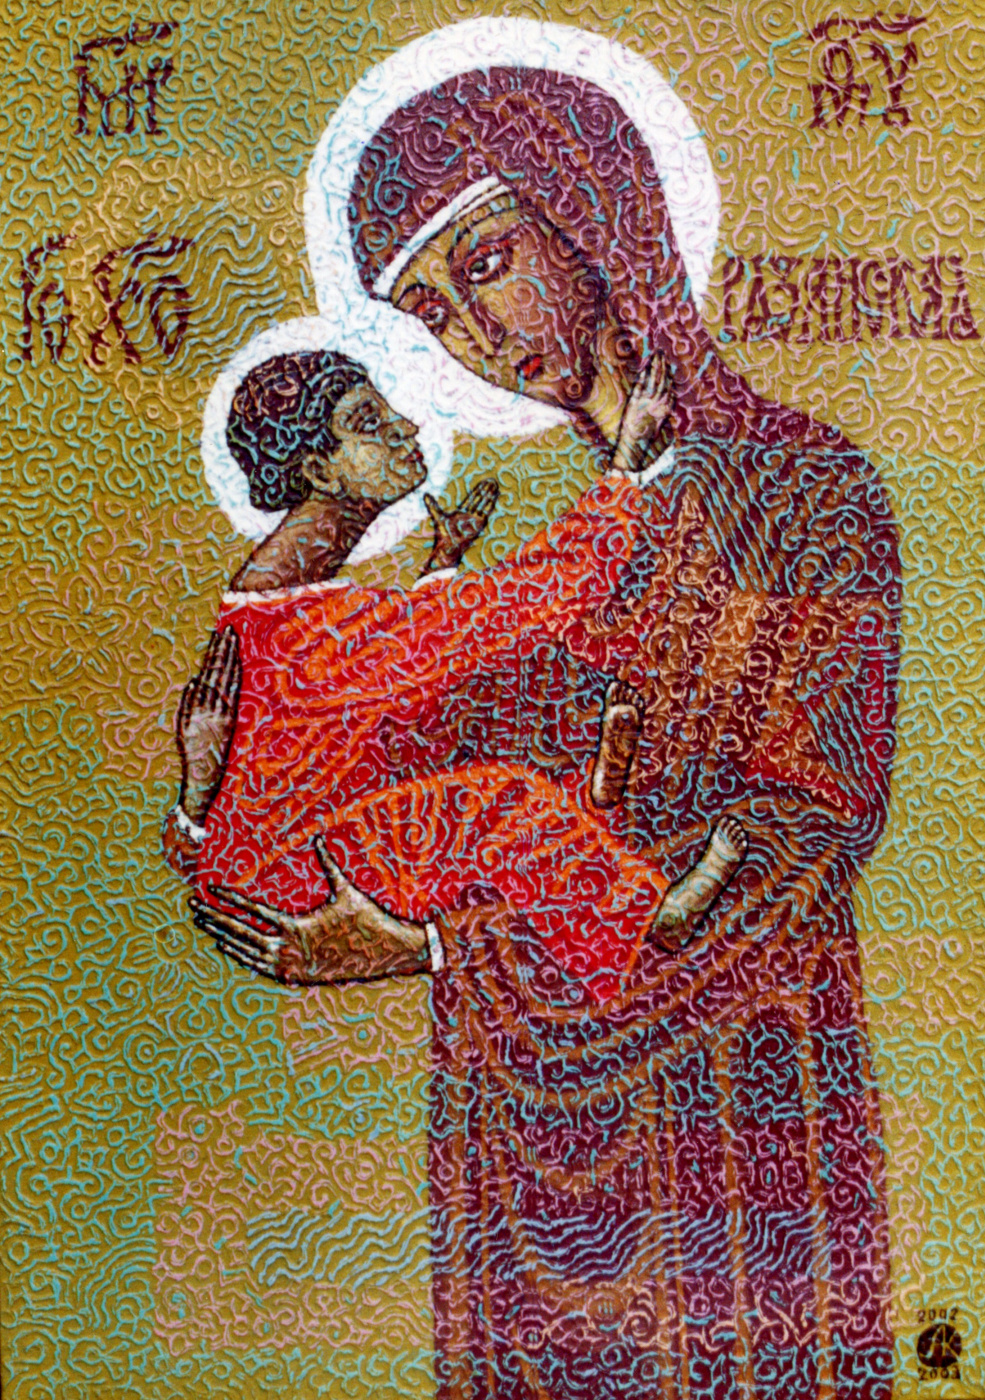 Алексей Петрович Акиндинов. Our Lady of Ryazan